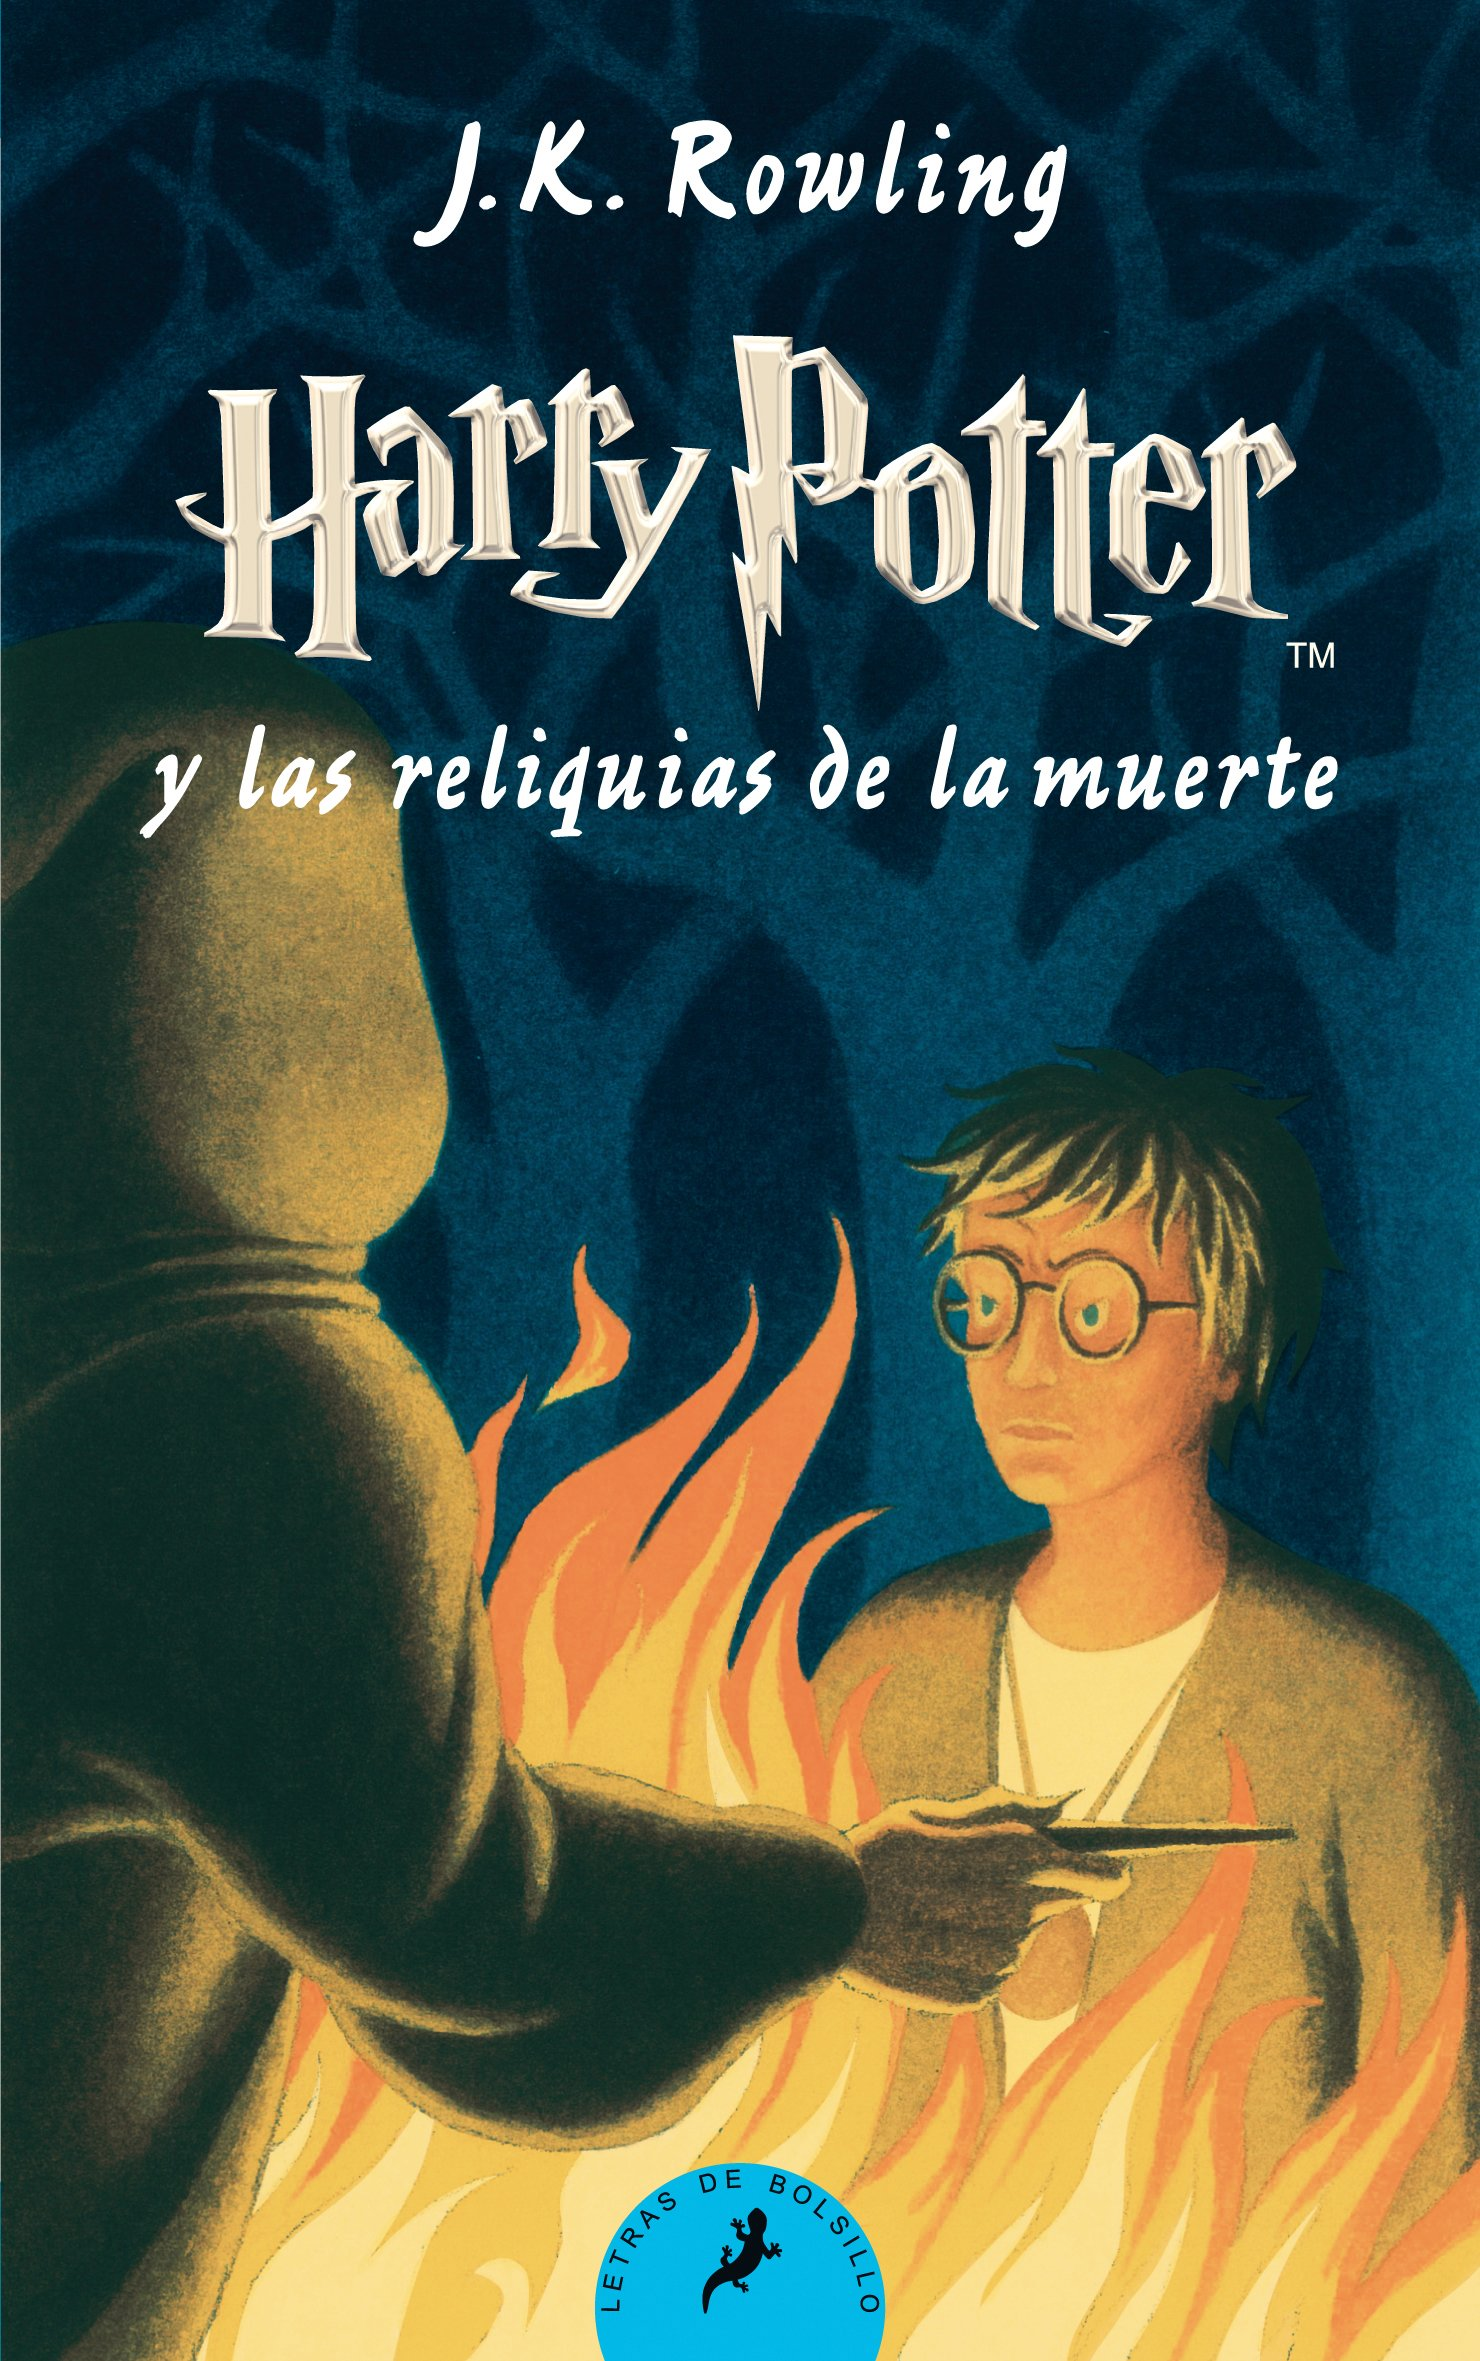 Read Online Harry Potter y Las Reliquias de la Muerte - Paperback (Spanish Edition of Harry Potter and the Deathly Hallows (Book 7) ebook